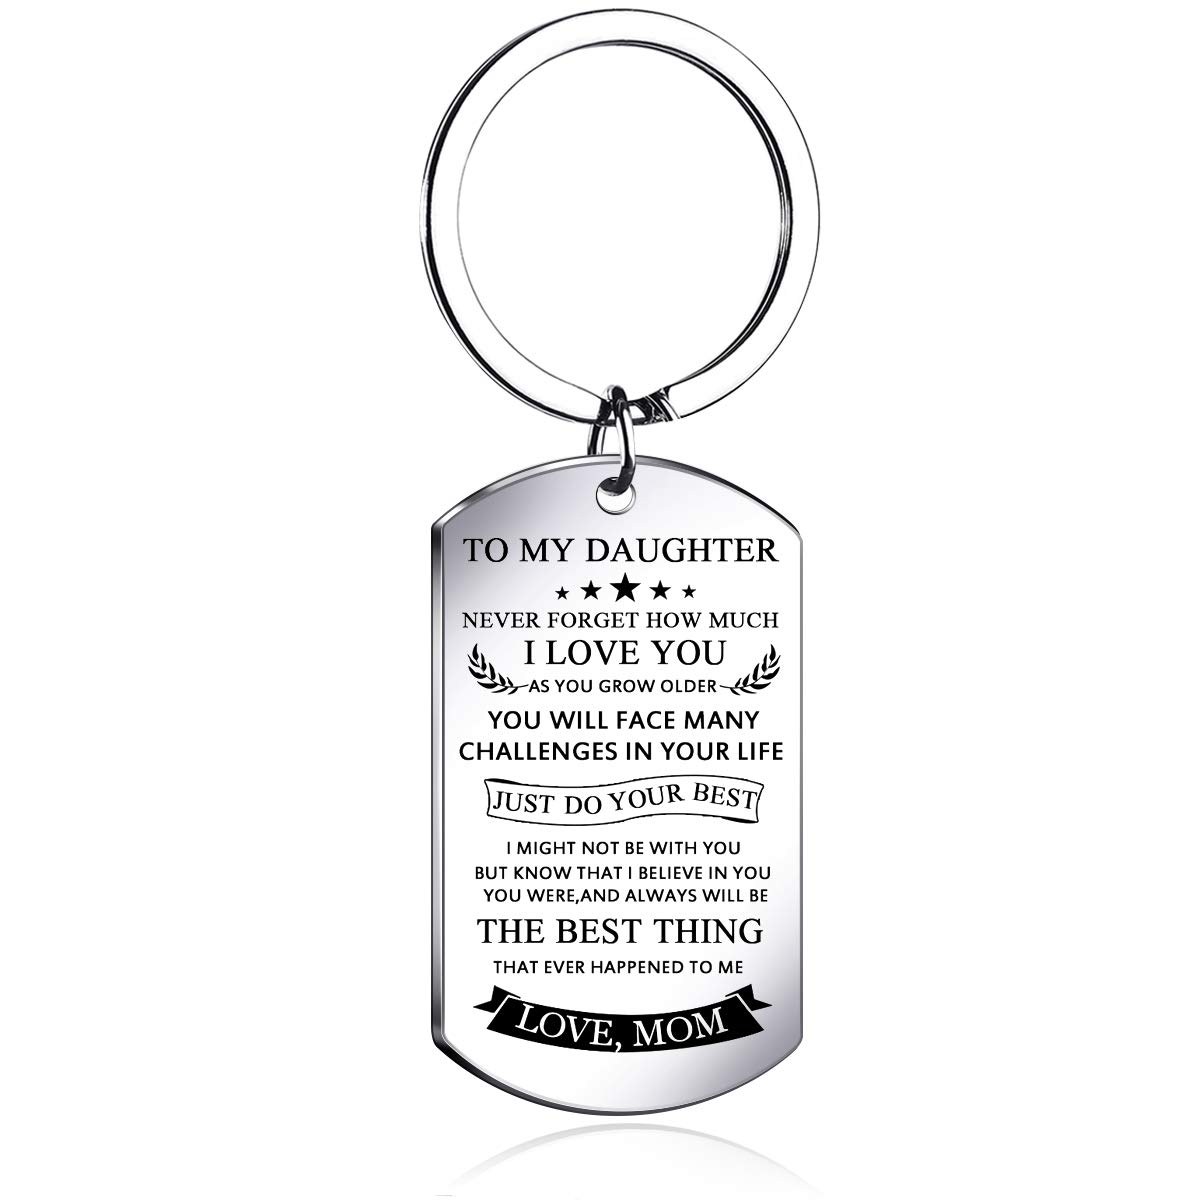 To my daughter from mom Stainless Steel keychain LettersTo my daughter never forget how.love mom keychain rings,Inspirational Gifts For daughter Jewelry